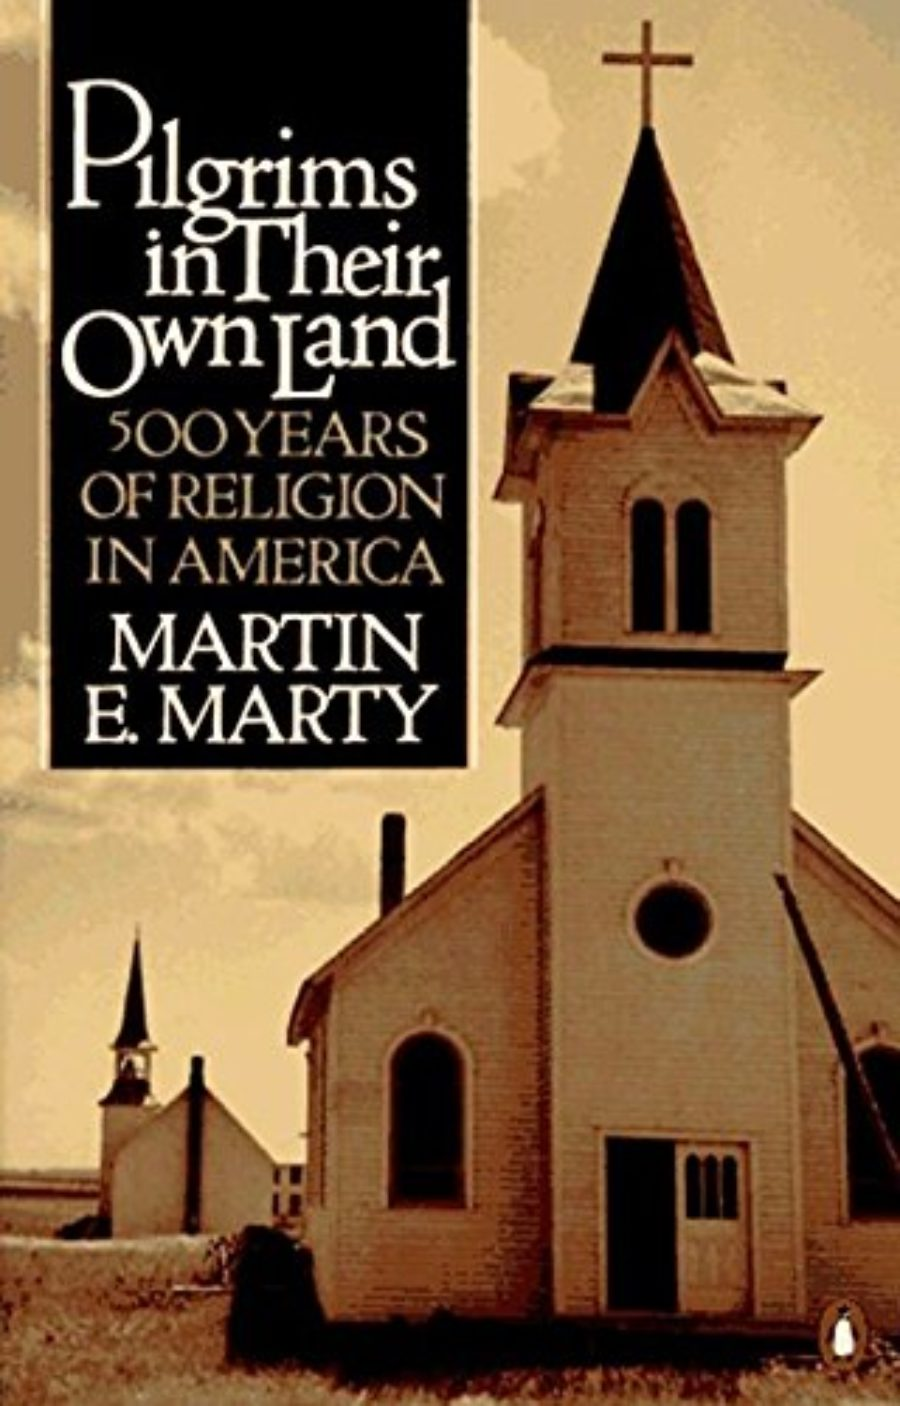 Cover of Pilgrims in Their Own Land: 500 Years of Religion in America